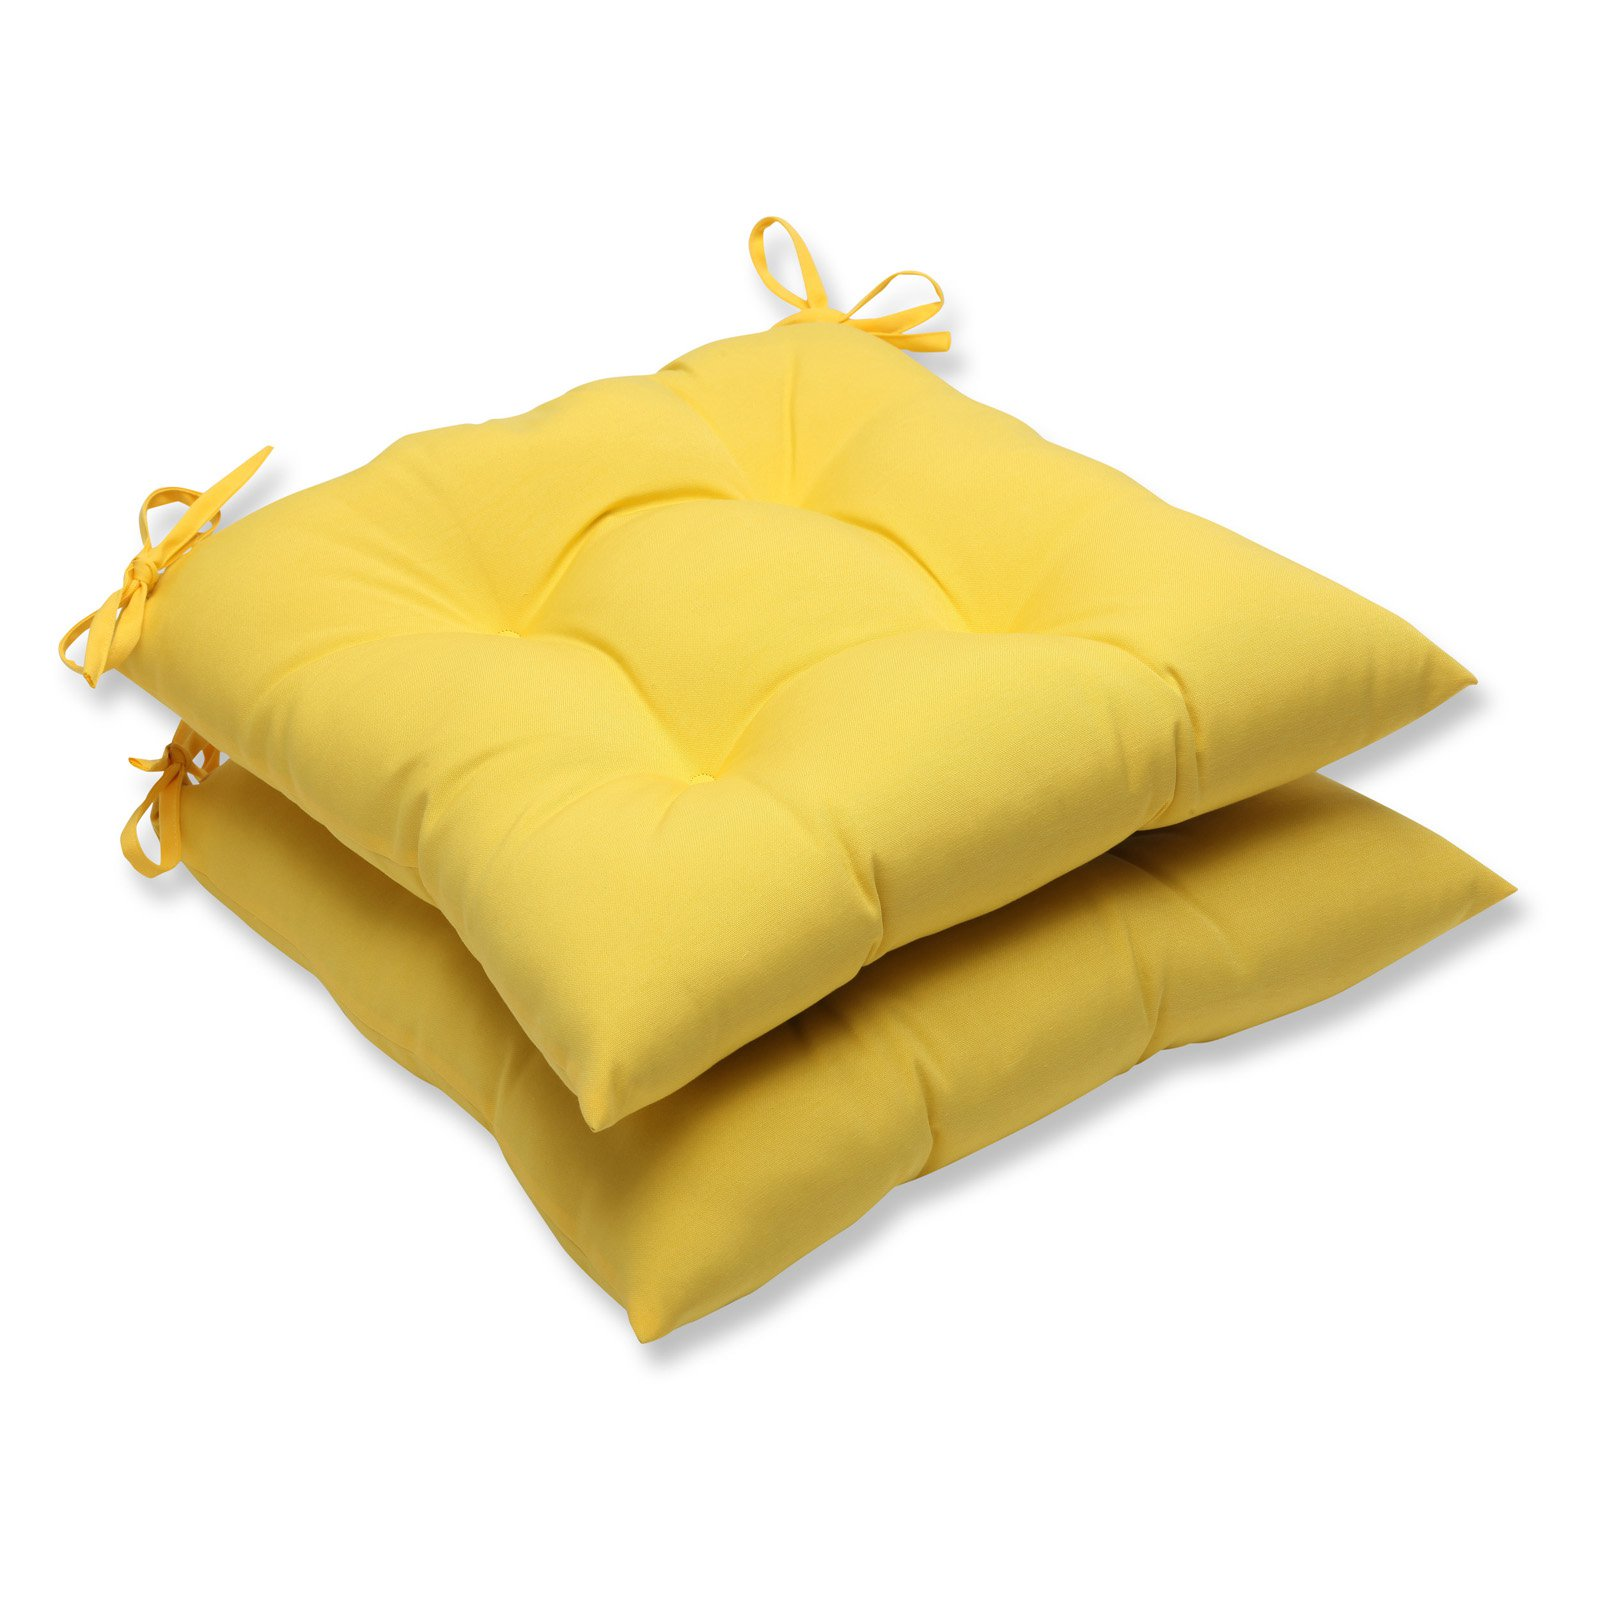 Pillow Perfect Outdoor/ Indoor Fresco Yellow Wrought Iron Seat Cushion (Set of 2)